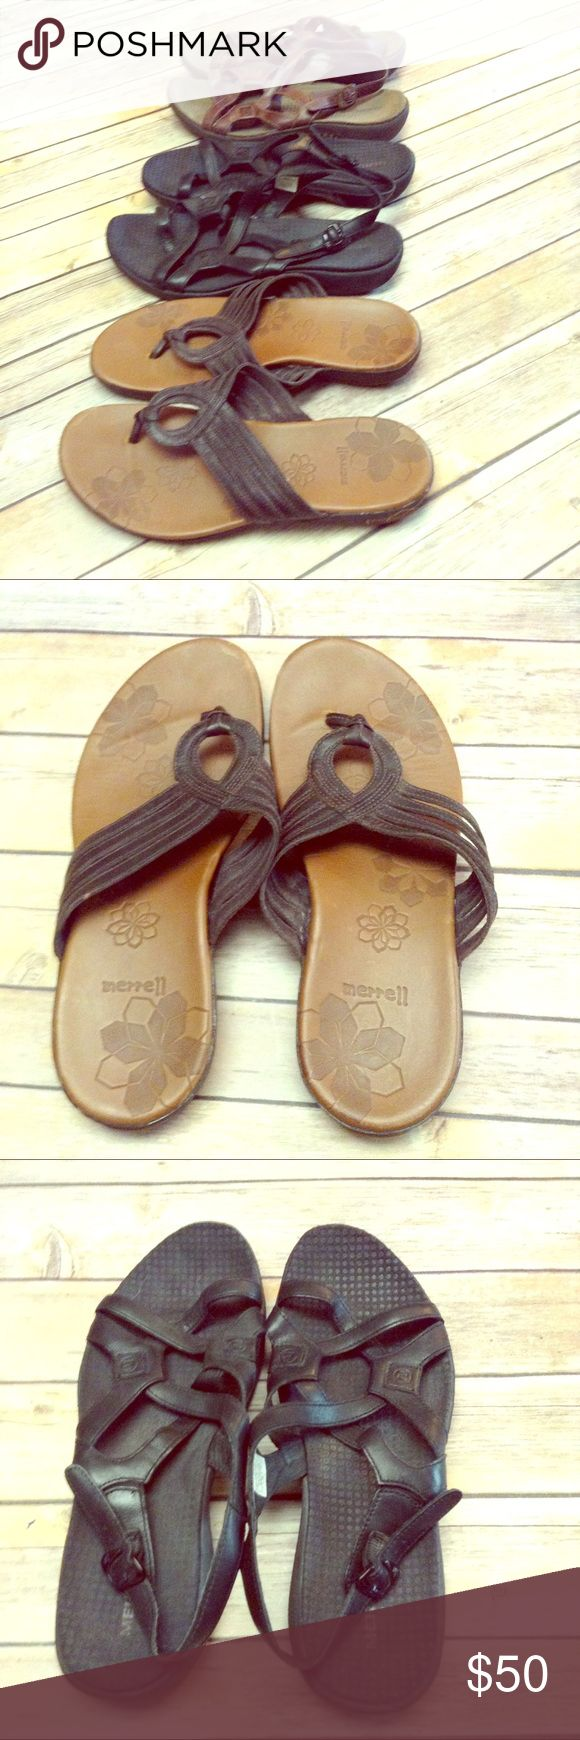 Merrill shoe bundle Price firm. Good used condition as pictured. Merrell Shoes Sandals